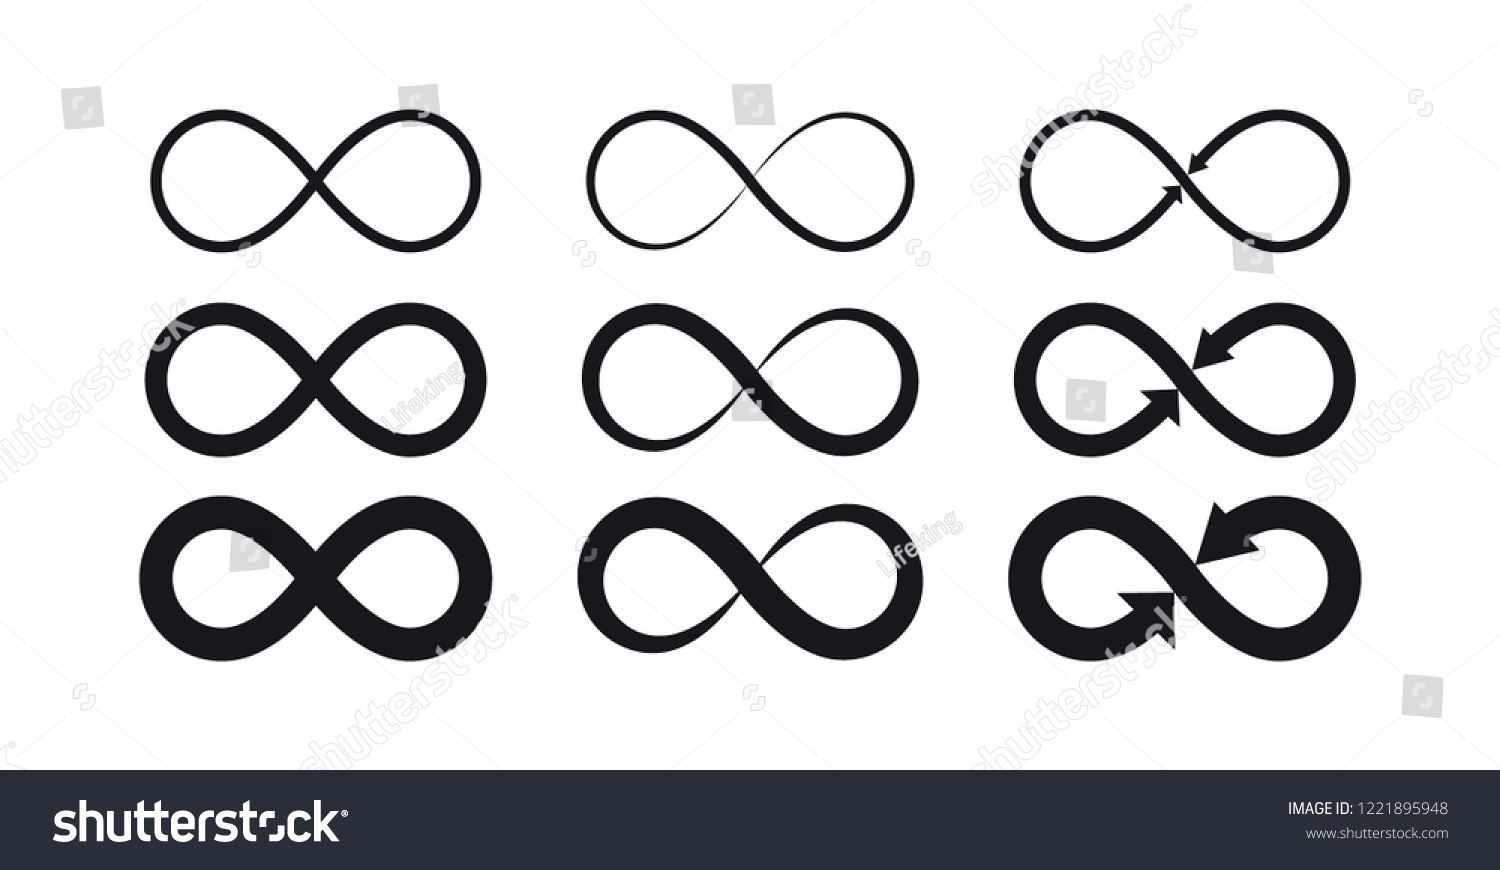 Infinity symbols. Eternal, limitless, endless, life logo or tattoo concept.